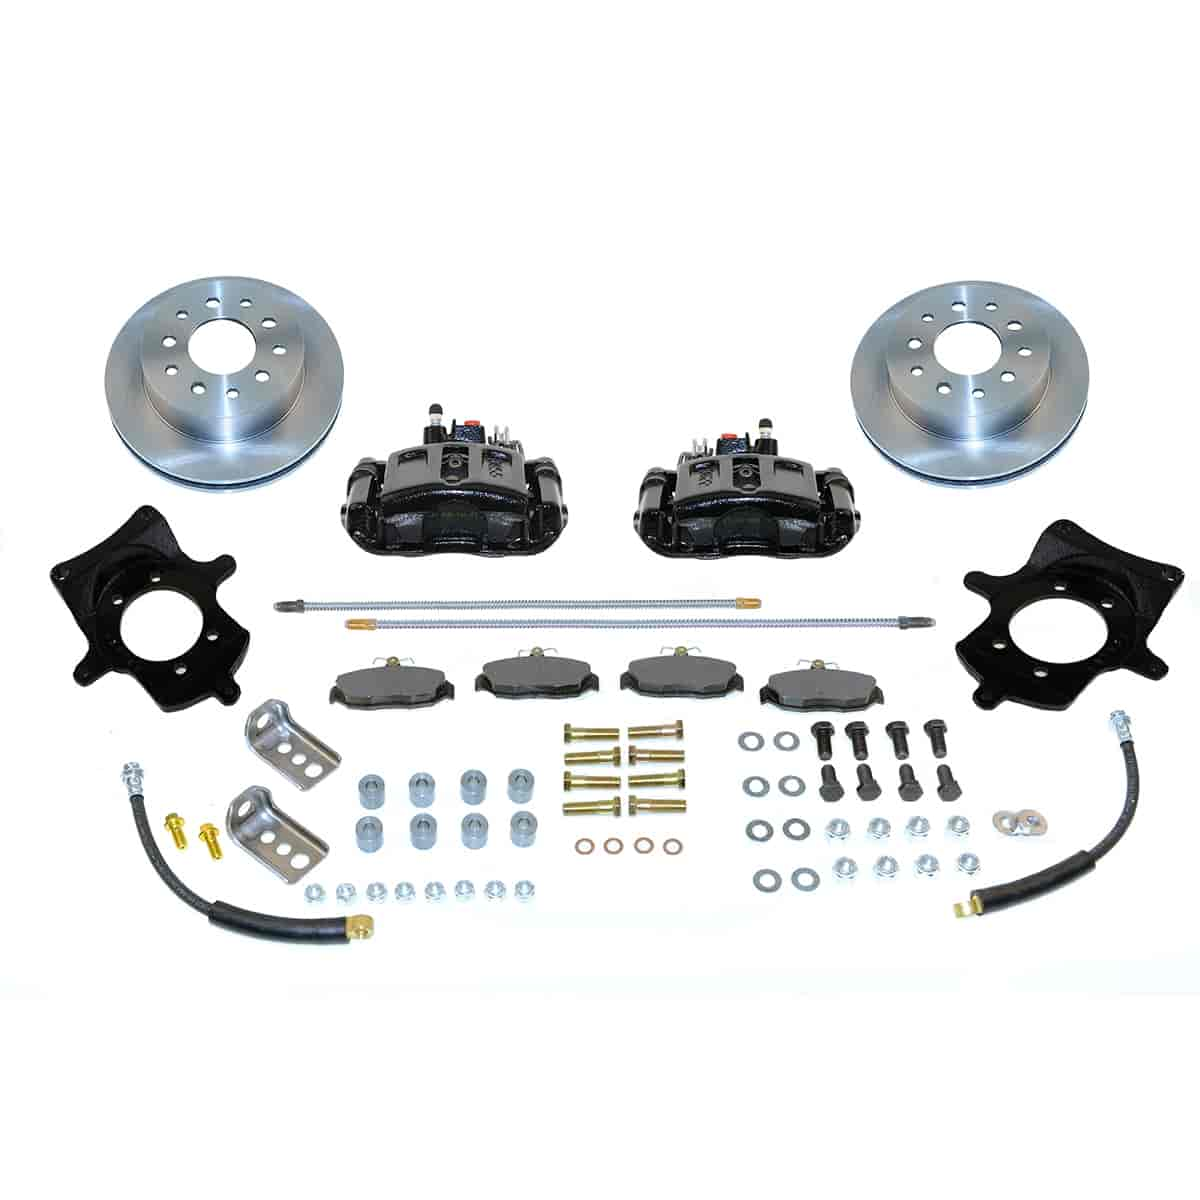 Stainless Steel Brakes A114BK - Stainless Steel Brakes Single Piston Rear Drum to Disc Brake Conversion Kits